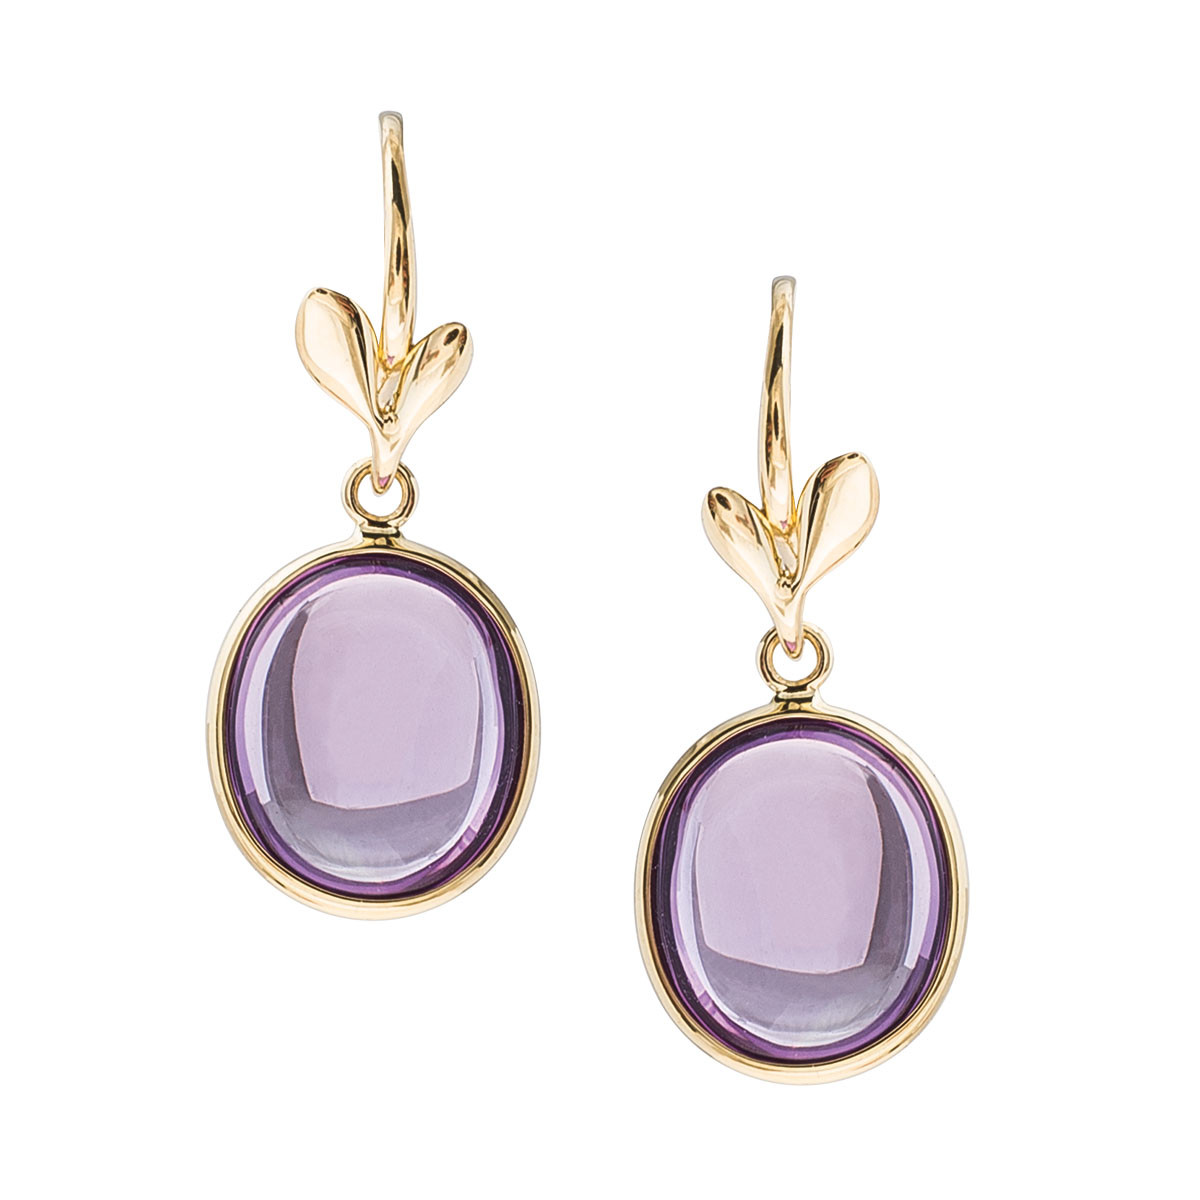 51cd2e29f Vintage Tiffany & Co. Paloma Picasso Olive Leaf Amethyst Drop Earrings  Gallery Image